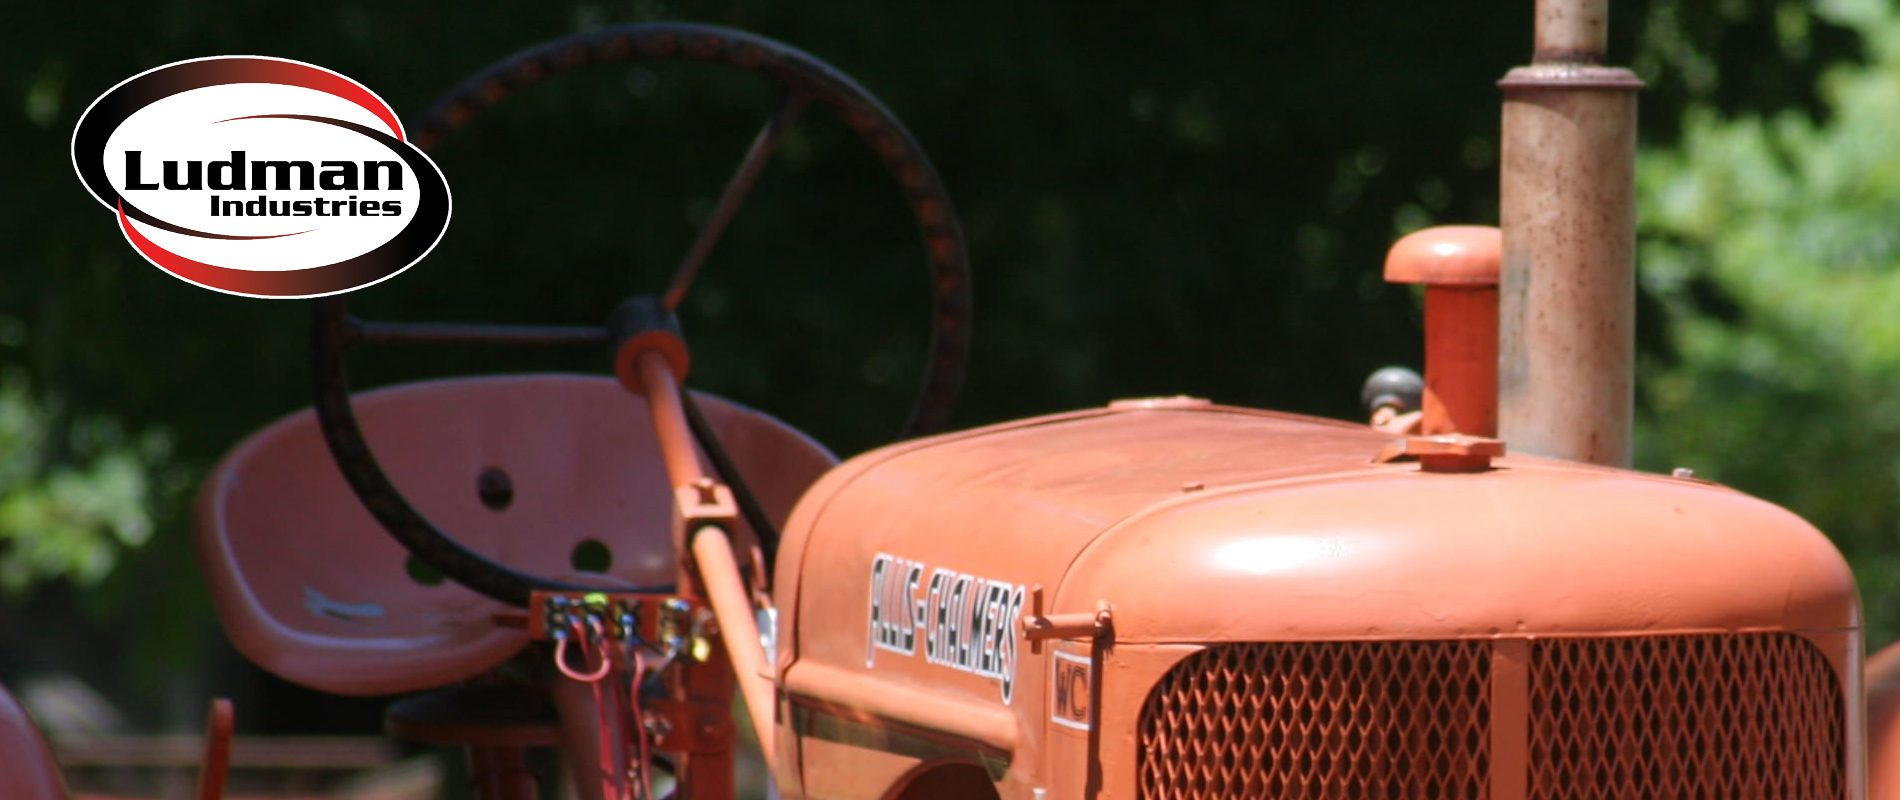 Classic Allis-Chalmers Tractor